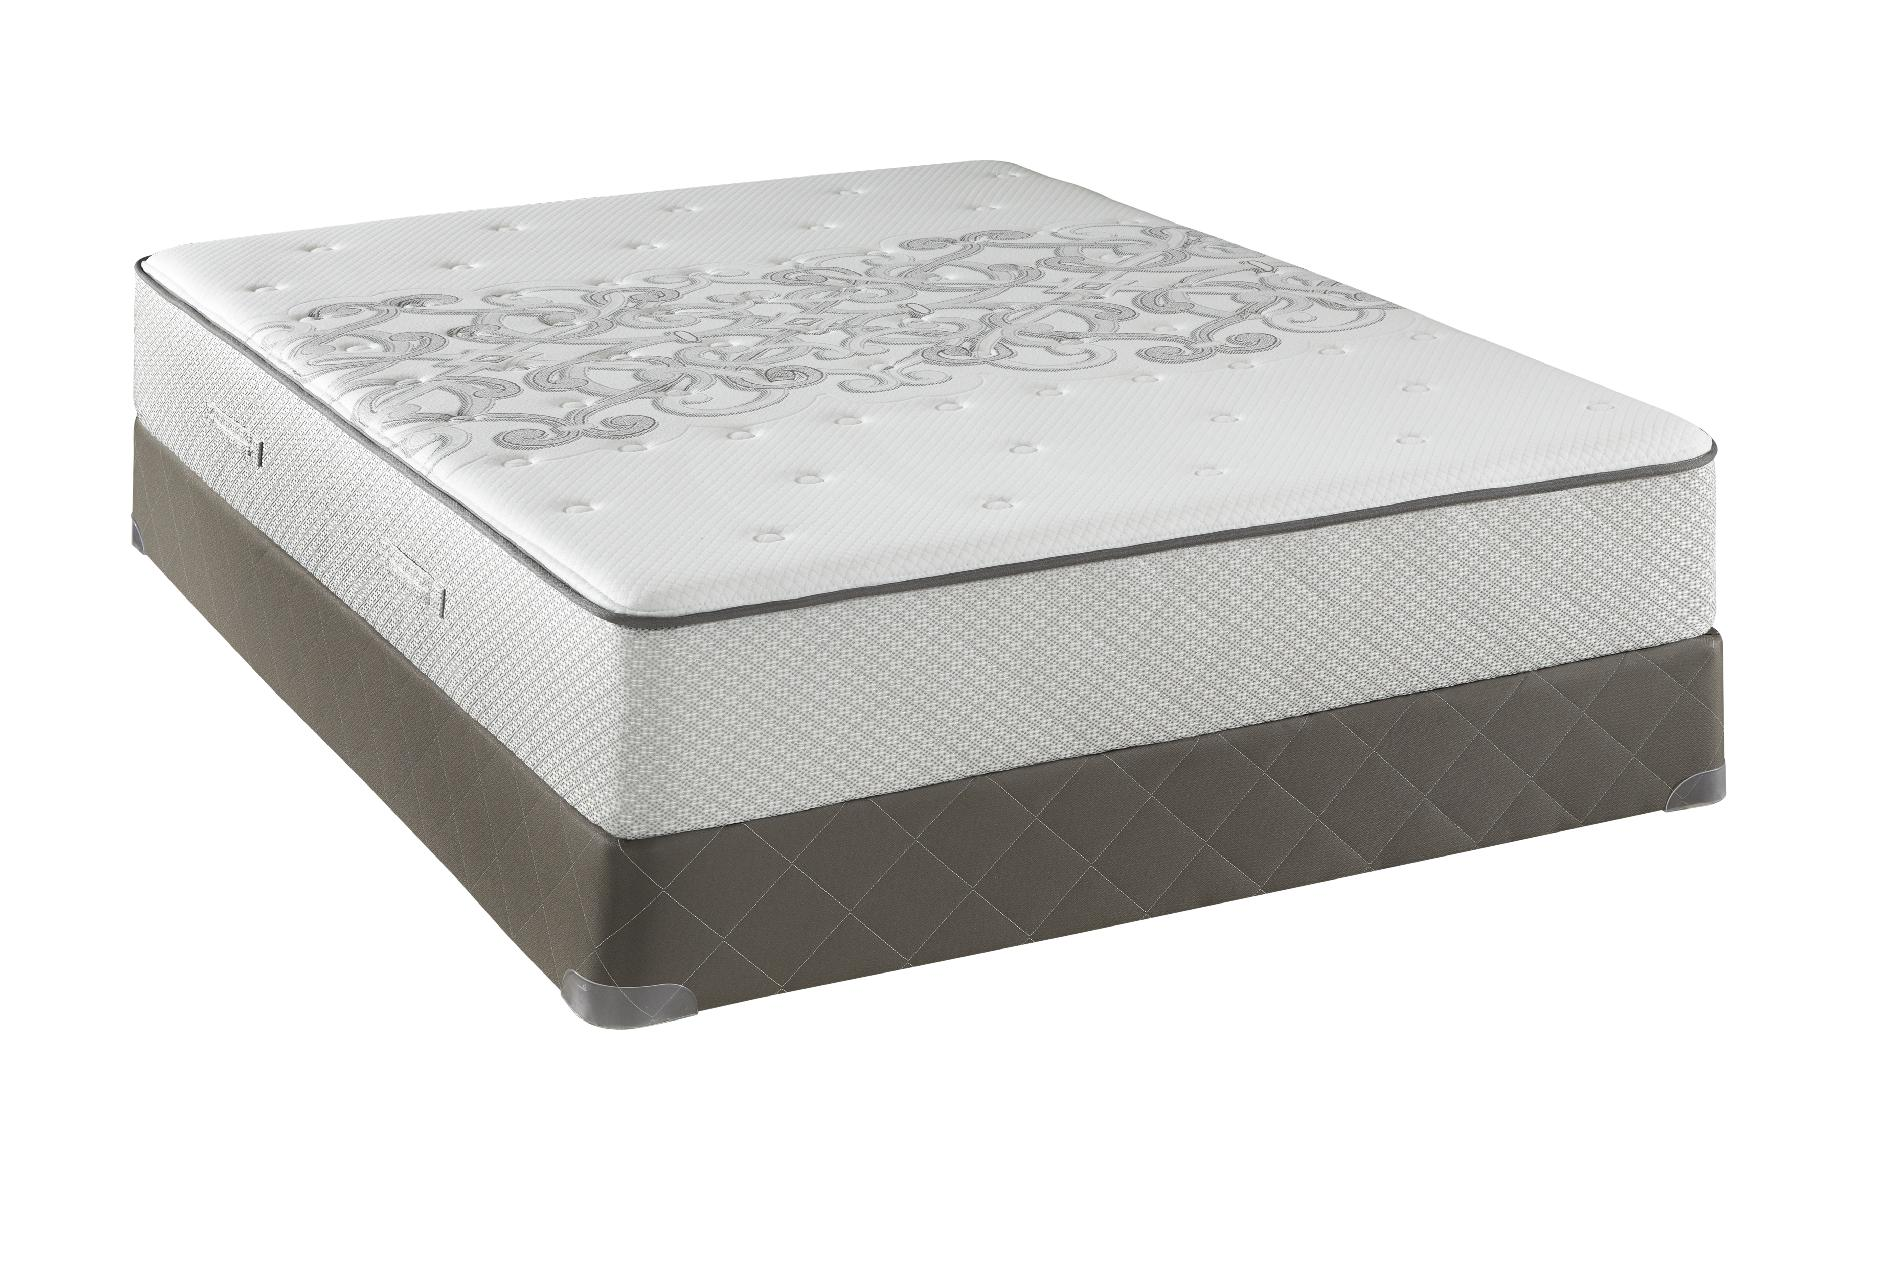 Sealy Posturepedic Fergus Falls Ti2 II, Ultra Firm, Full Extra Long Mattress Only